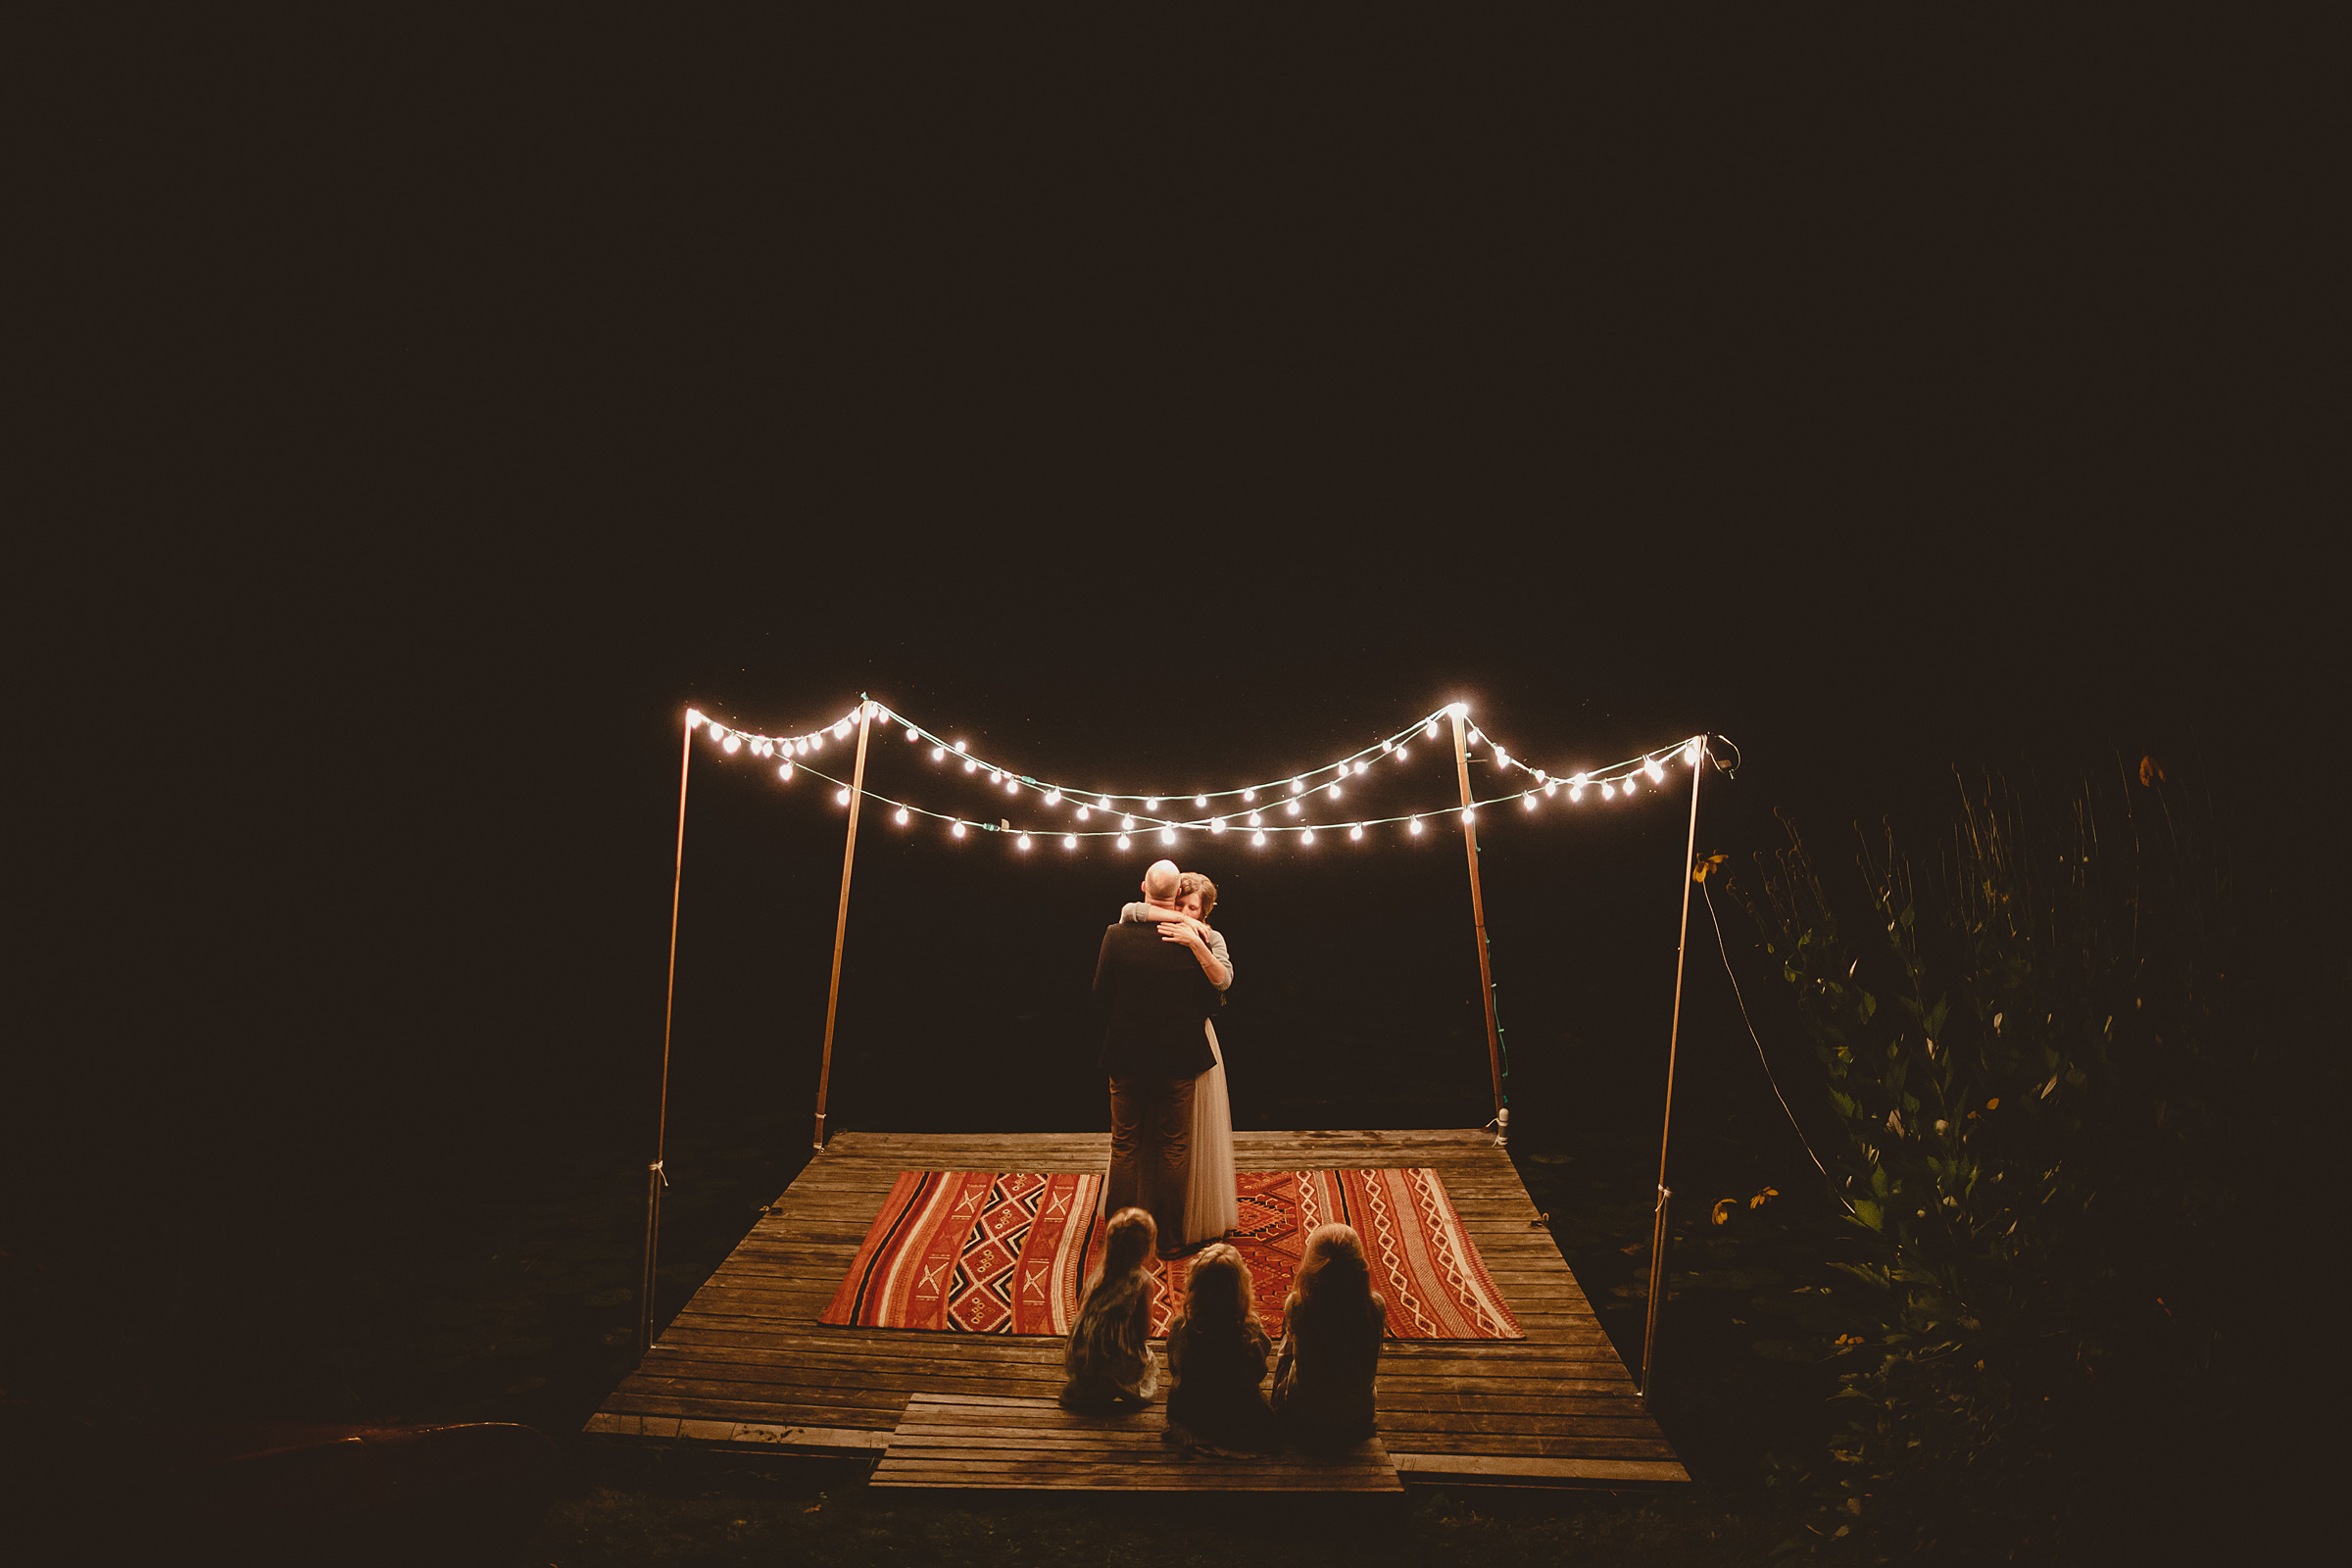 Couple dance on outdoor stage under string lights - photo by Ed Peers Photography